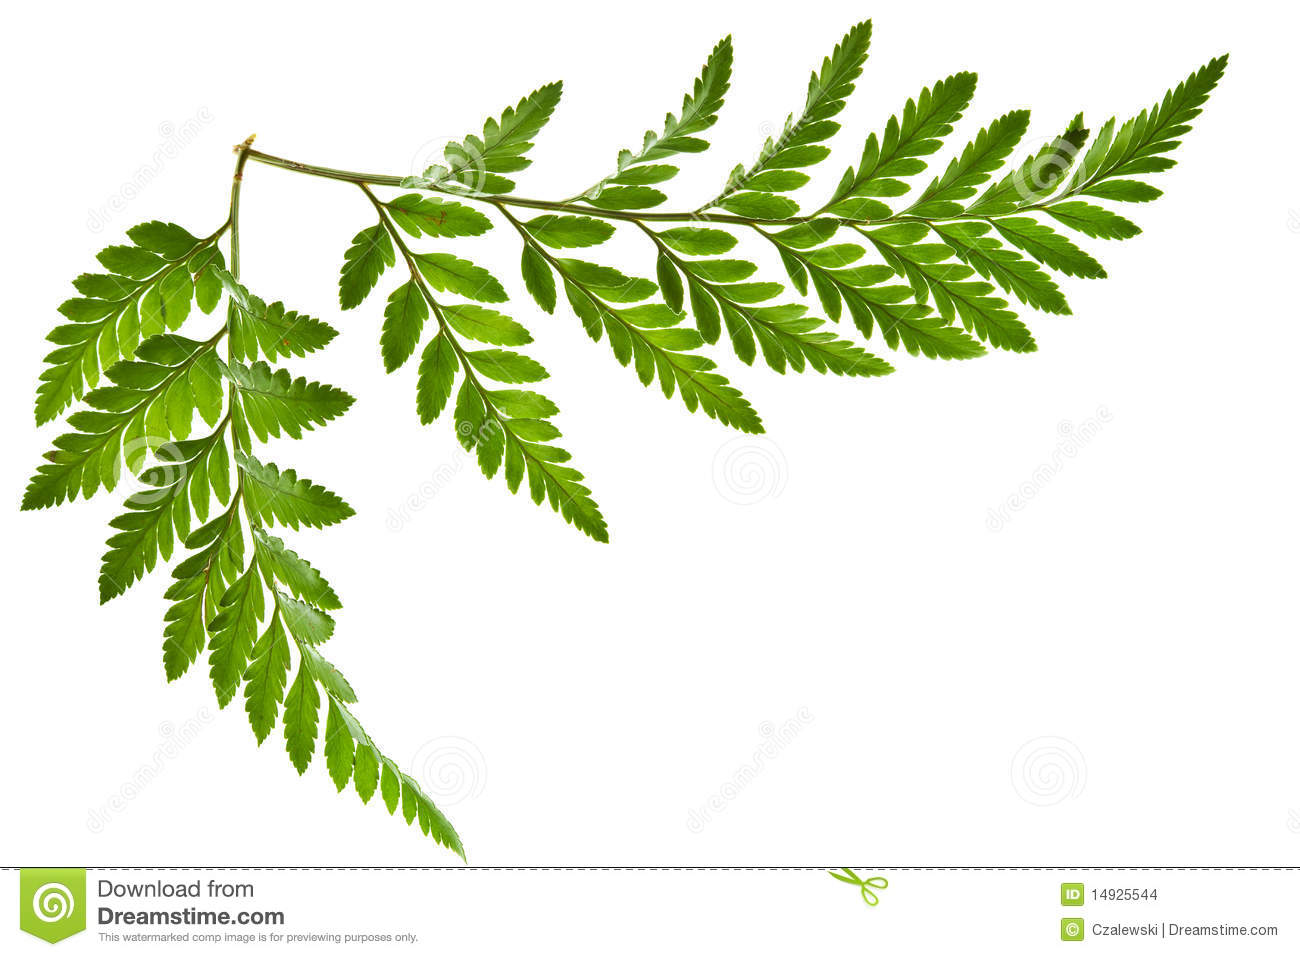 Stock Images: Green fern leaf isolated. Image: 14925544